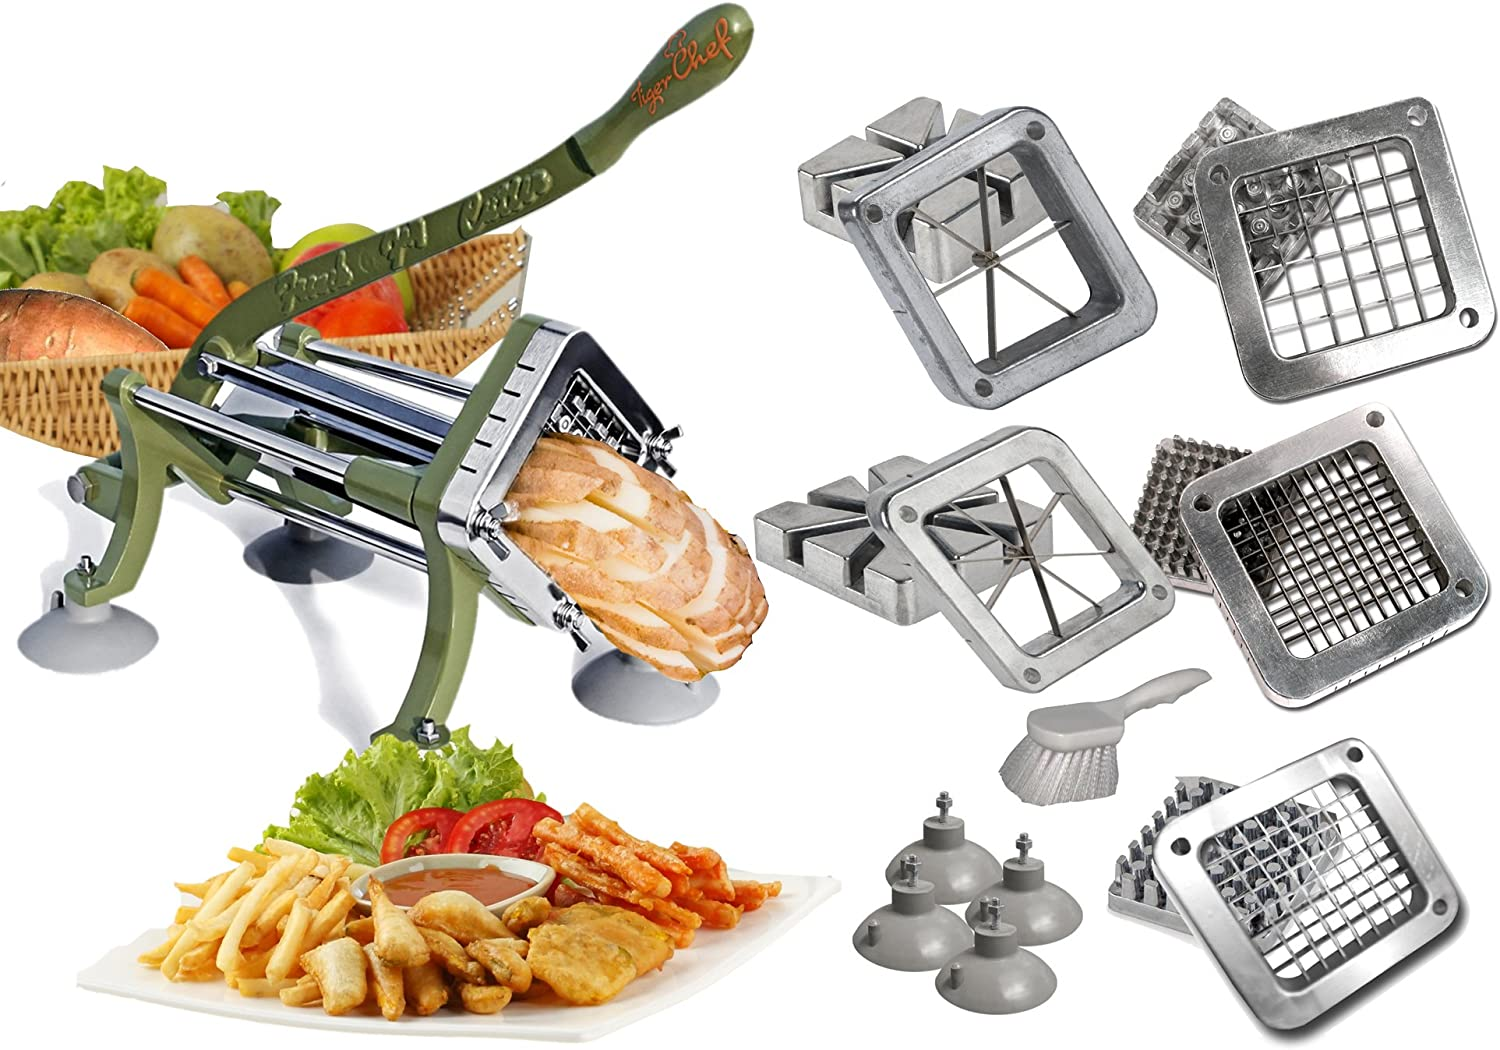 8 Wedge Green Countertop Cast Iron Potato French Fry Cutter Slicer Restaurant